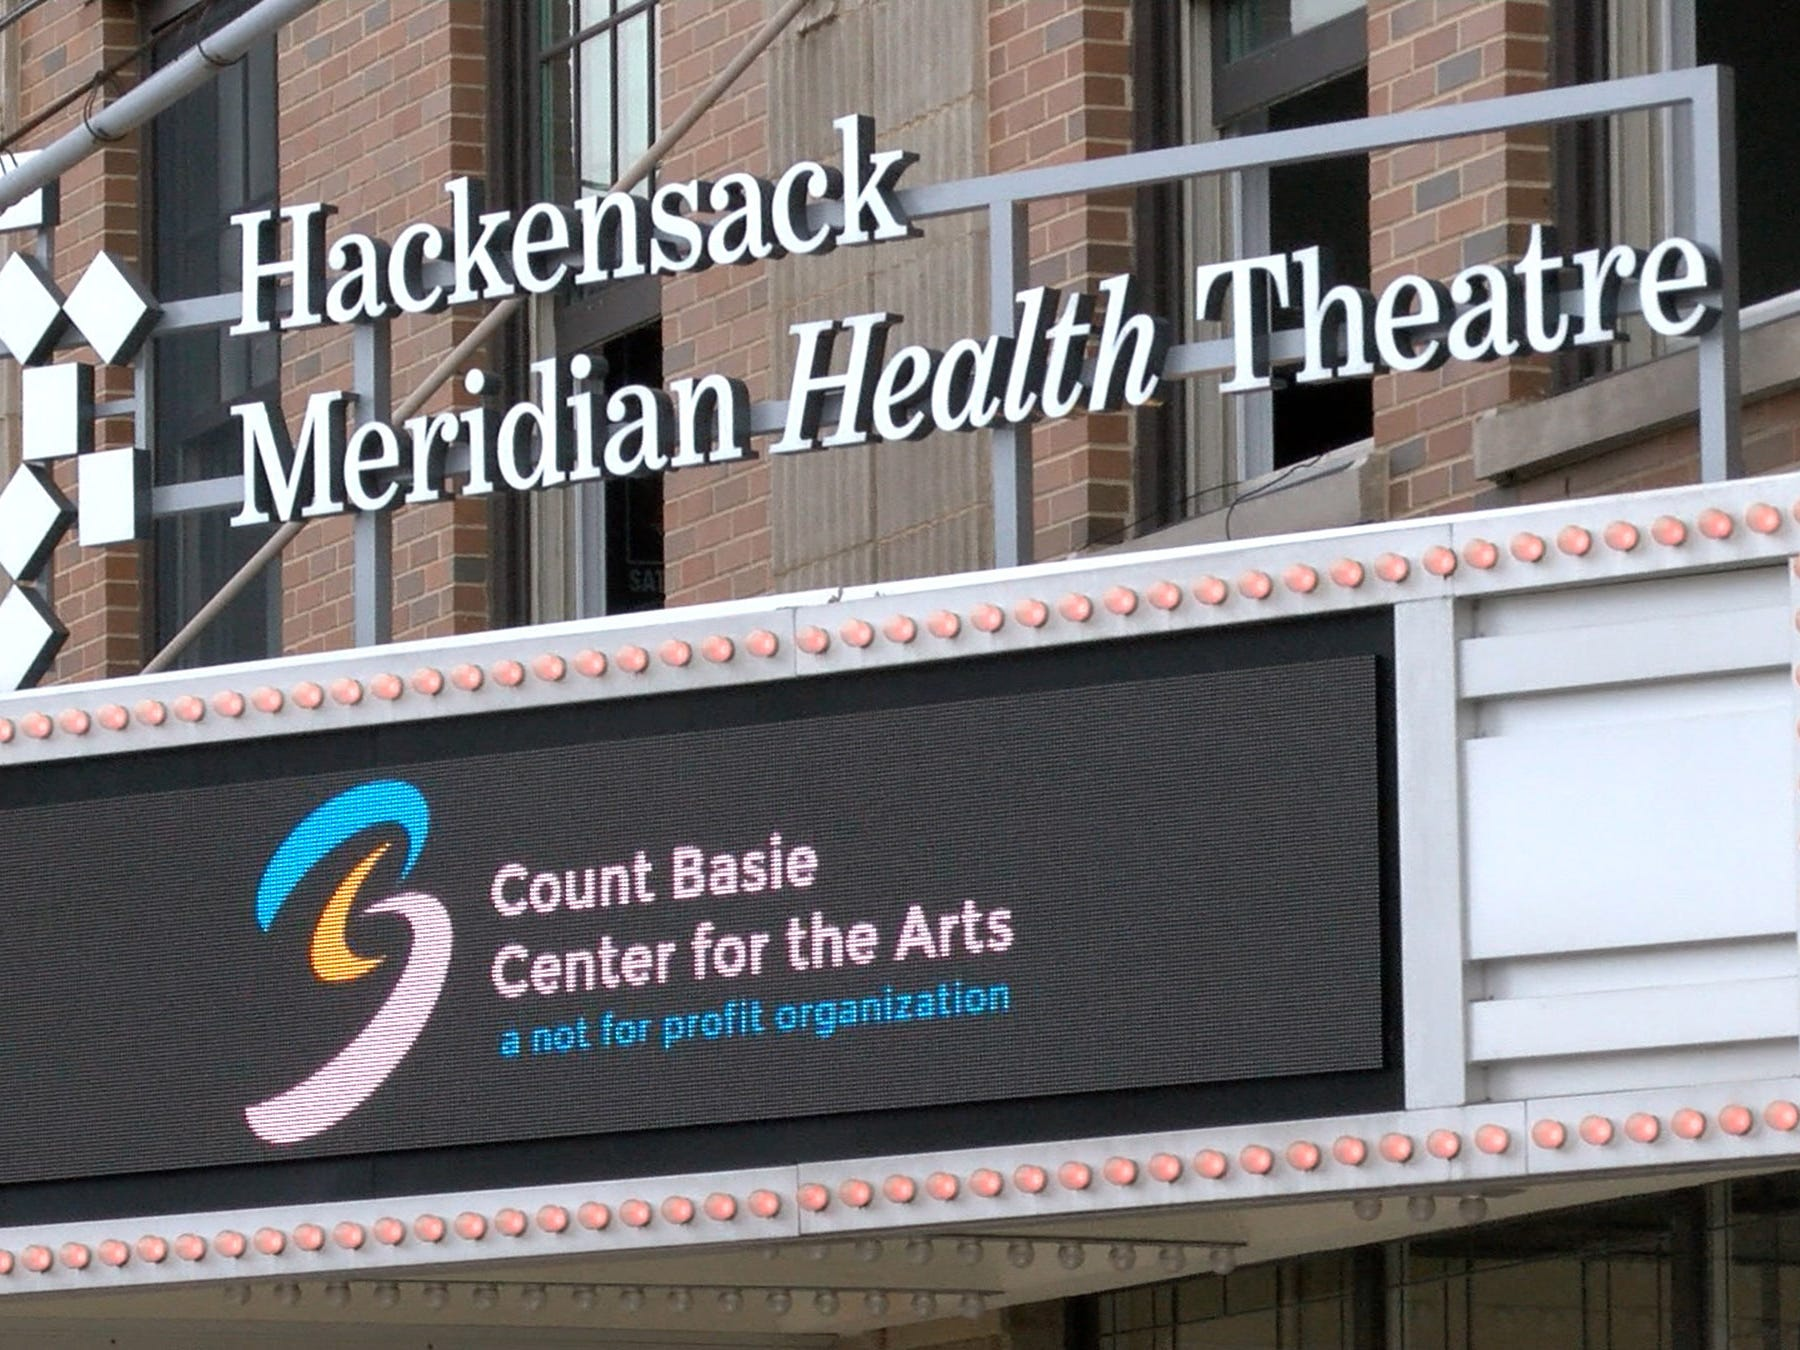 A new partnership between the Count Baise Theatre for the Arts in Red Bank and Hackensack Meridian Health was announced Friday, October 26, 2018.